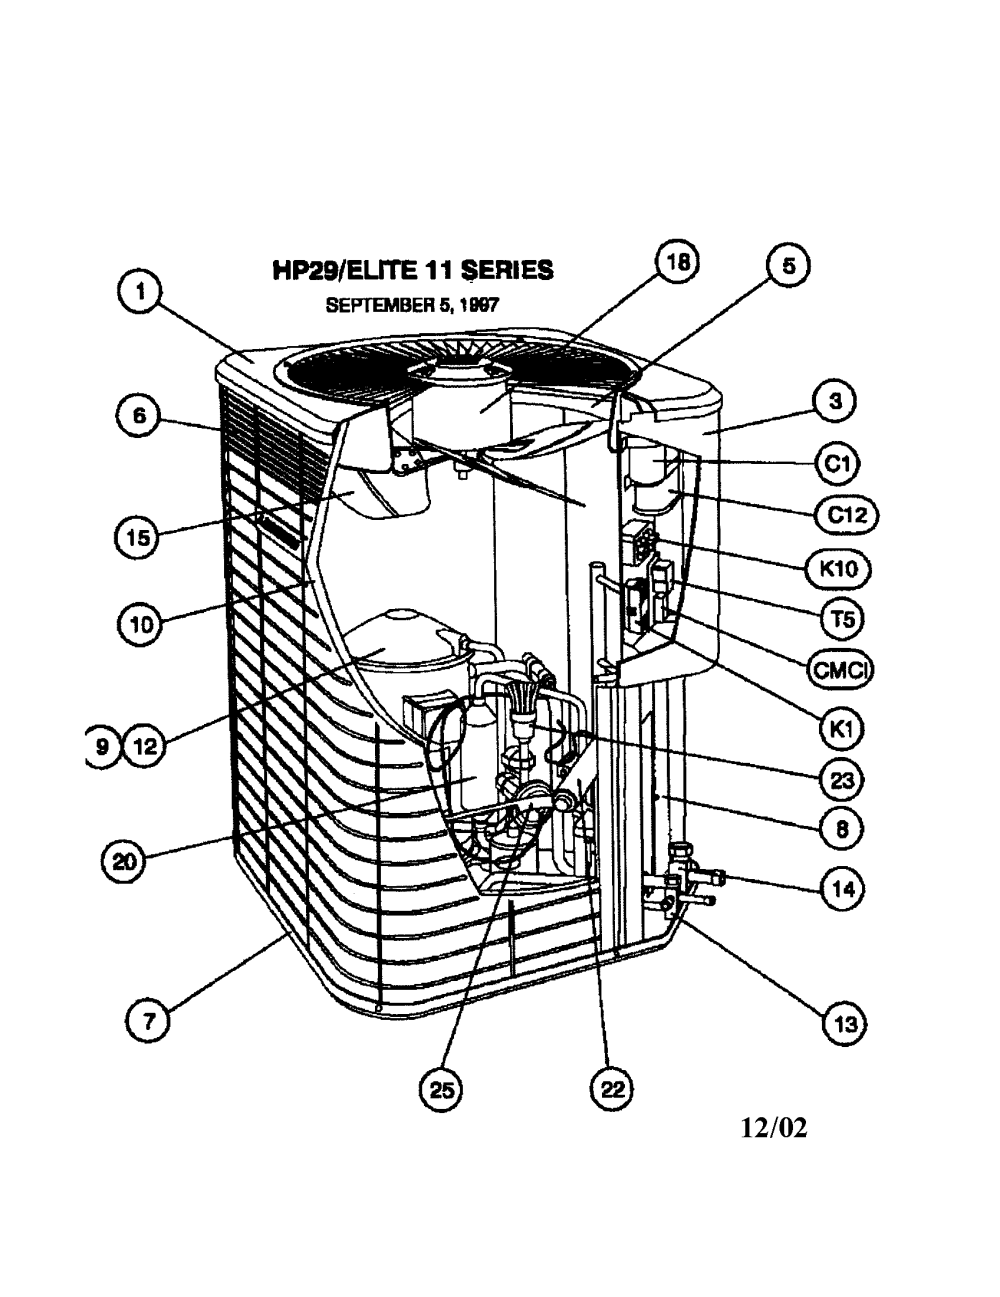 medium resolution of wiring diagram for lennox air conditioner wiring diagram schematics ac units for homes lennox model hp29